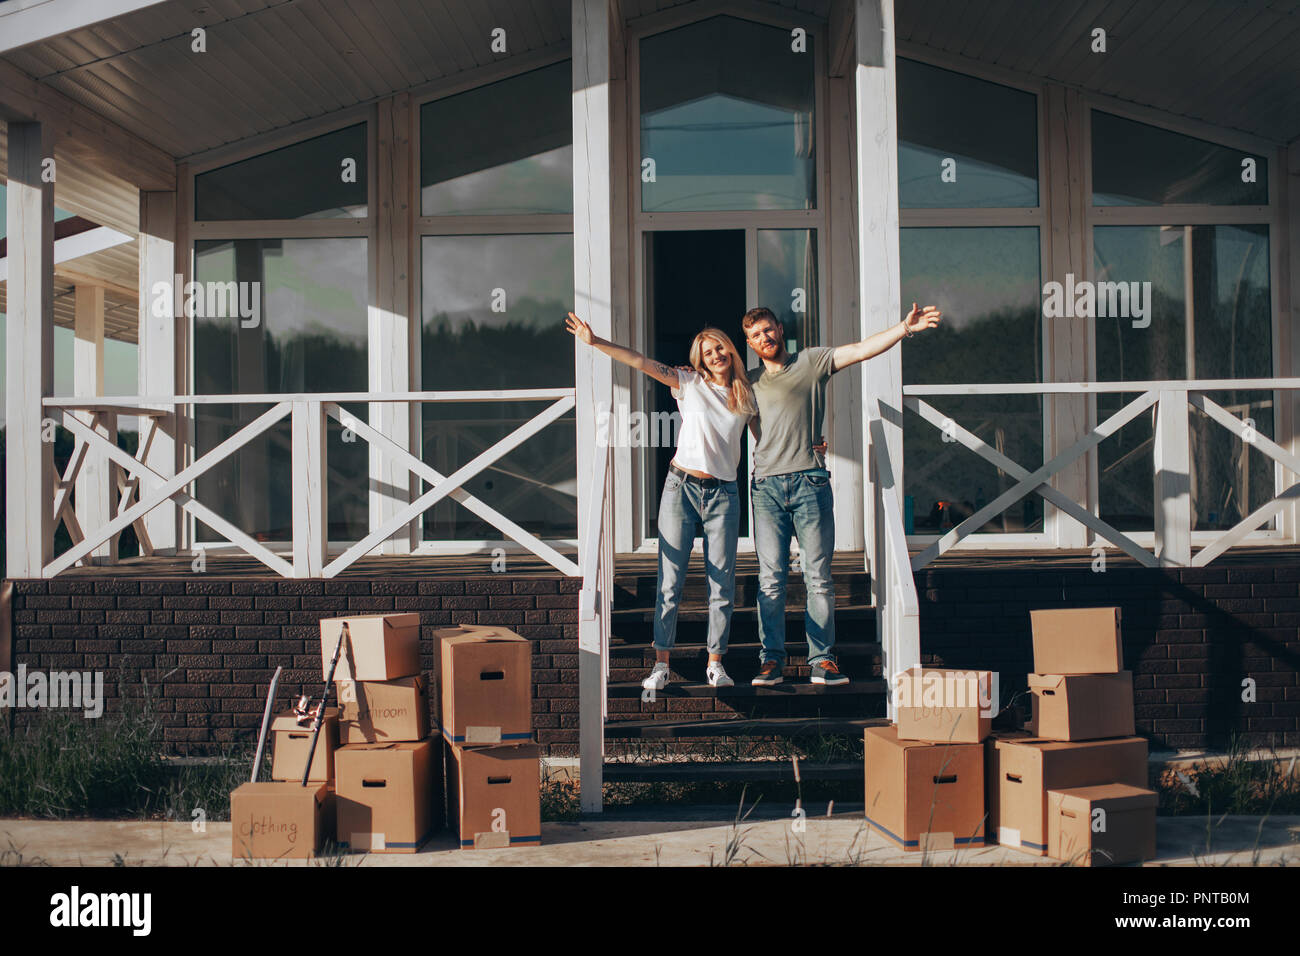 Husband and wife standing in front of new buying home with boxes - Stock Image